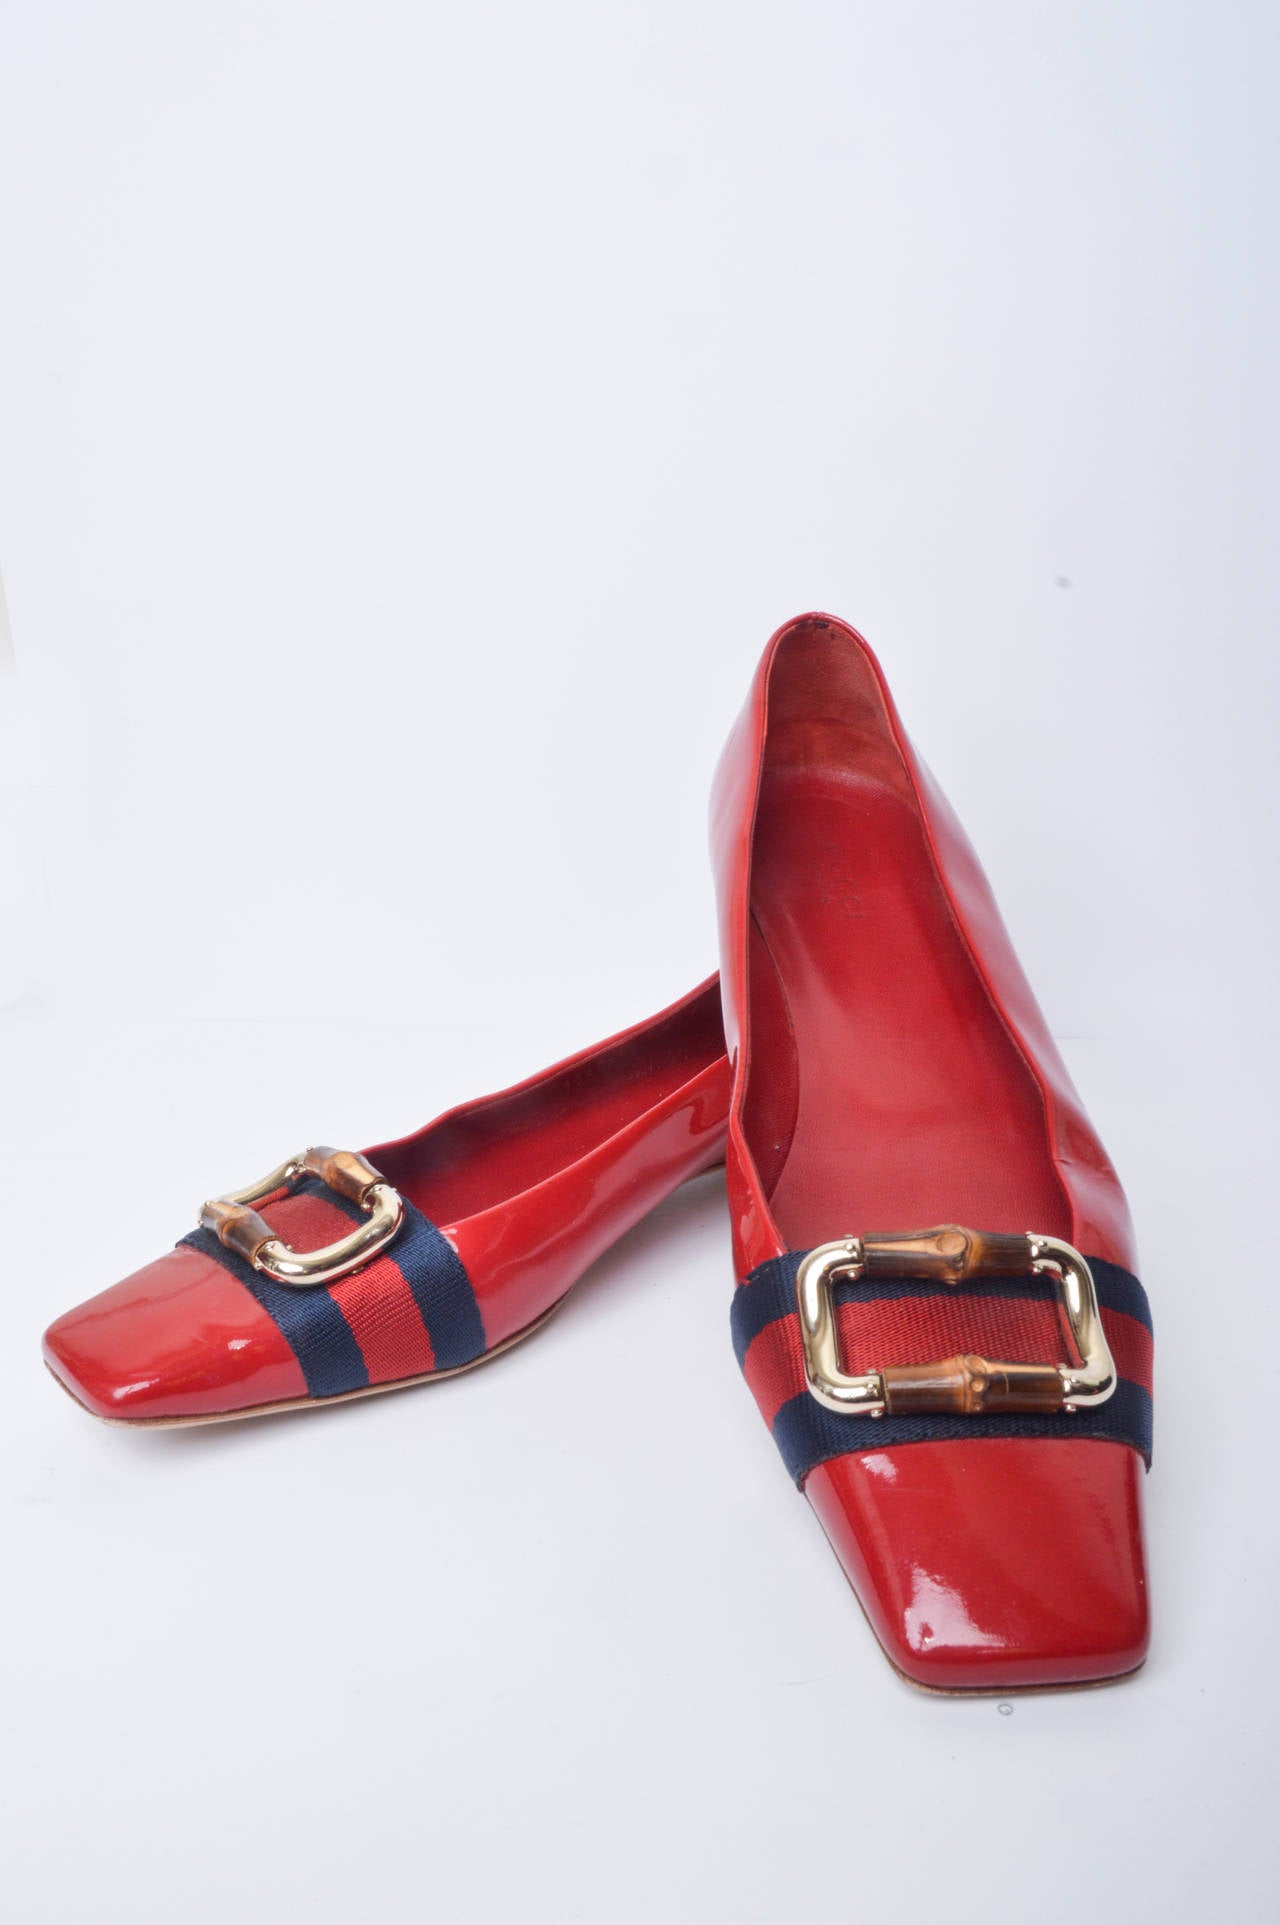 Gorgeous vibrant red patent leather uppers.